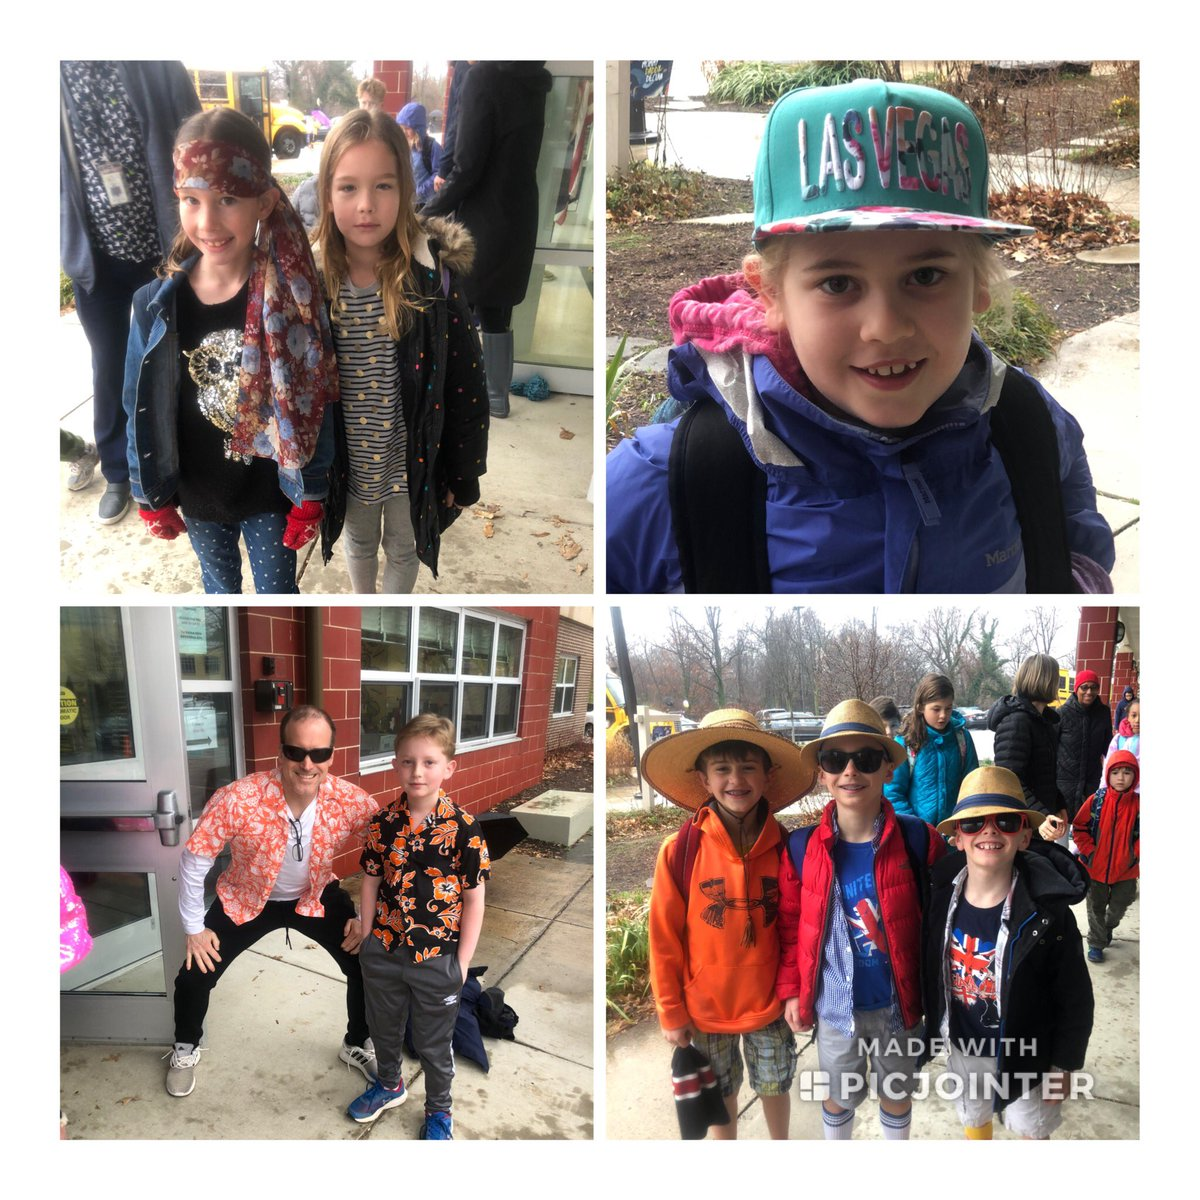 RT <a target='_blank' href='http://twitter.com/GlebeAPS'>@GlebeAPS</a>: It's a tourist/adventure KIND of day at Glebe! <a target='_blank' href='http://search.twitter.com/search?q=KindnessMatters'><a target='_blank' href='https://twitter.com/hashtag/KindnessMatters?src=hash'>#KindnessMatters</a></a> <a target='_blank' href='http://search.twitter.com/search?q=GlebeEagles'><a target='_blank' href='https://twitter.com/hashtag/GlebeEagles?src=hash'>#GlebeEagles</a></a> <a target='_blank' href='http://twitter.com/glebepta'>@glebepta</a> <a target='_blank' href='https://t.co/8qyN6WS0Vf'>https://t.co/8qyN6WS0Vf</a>